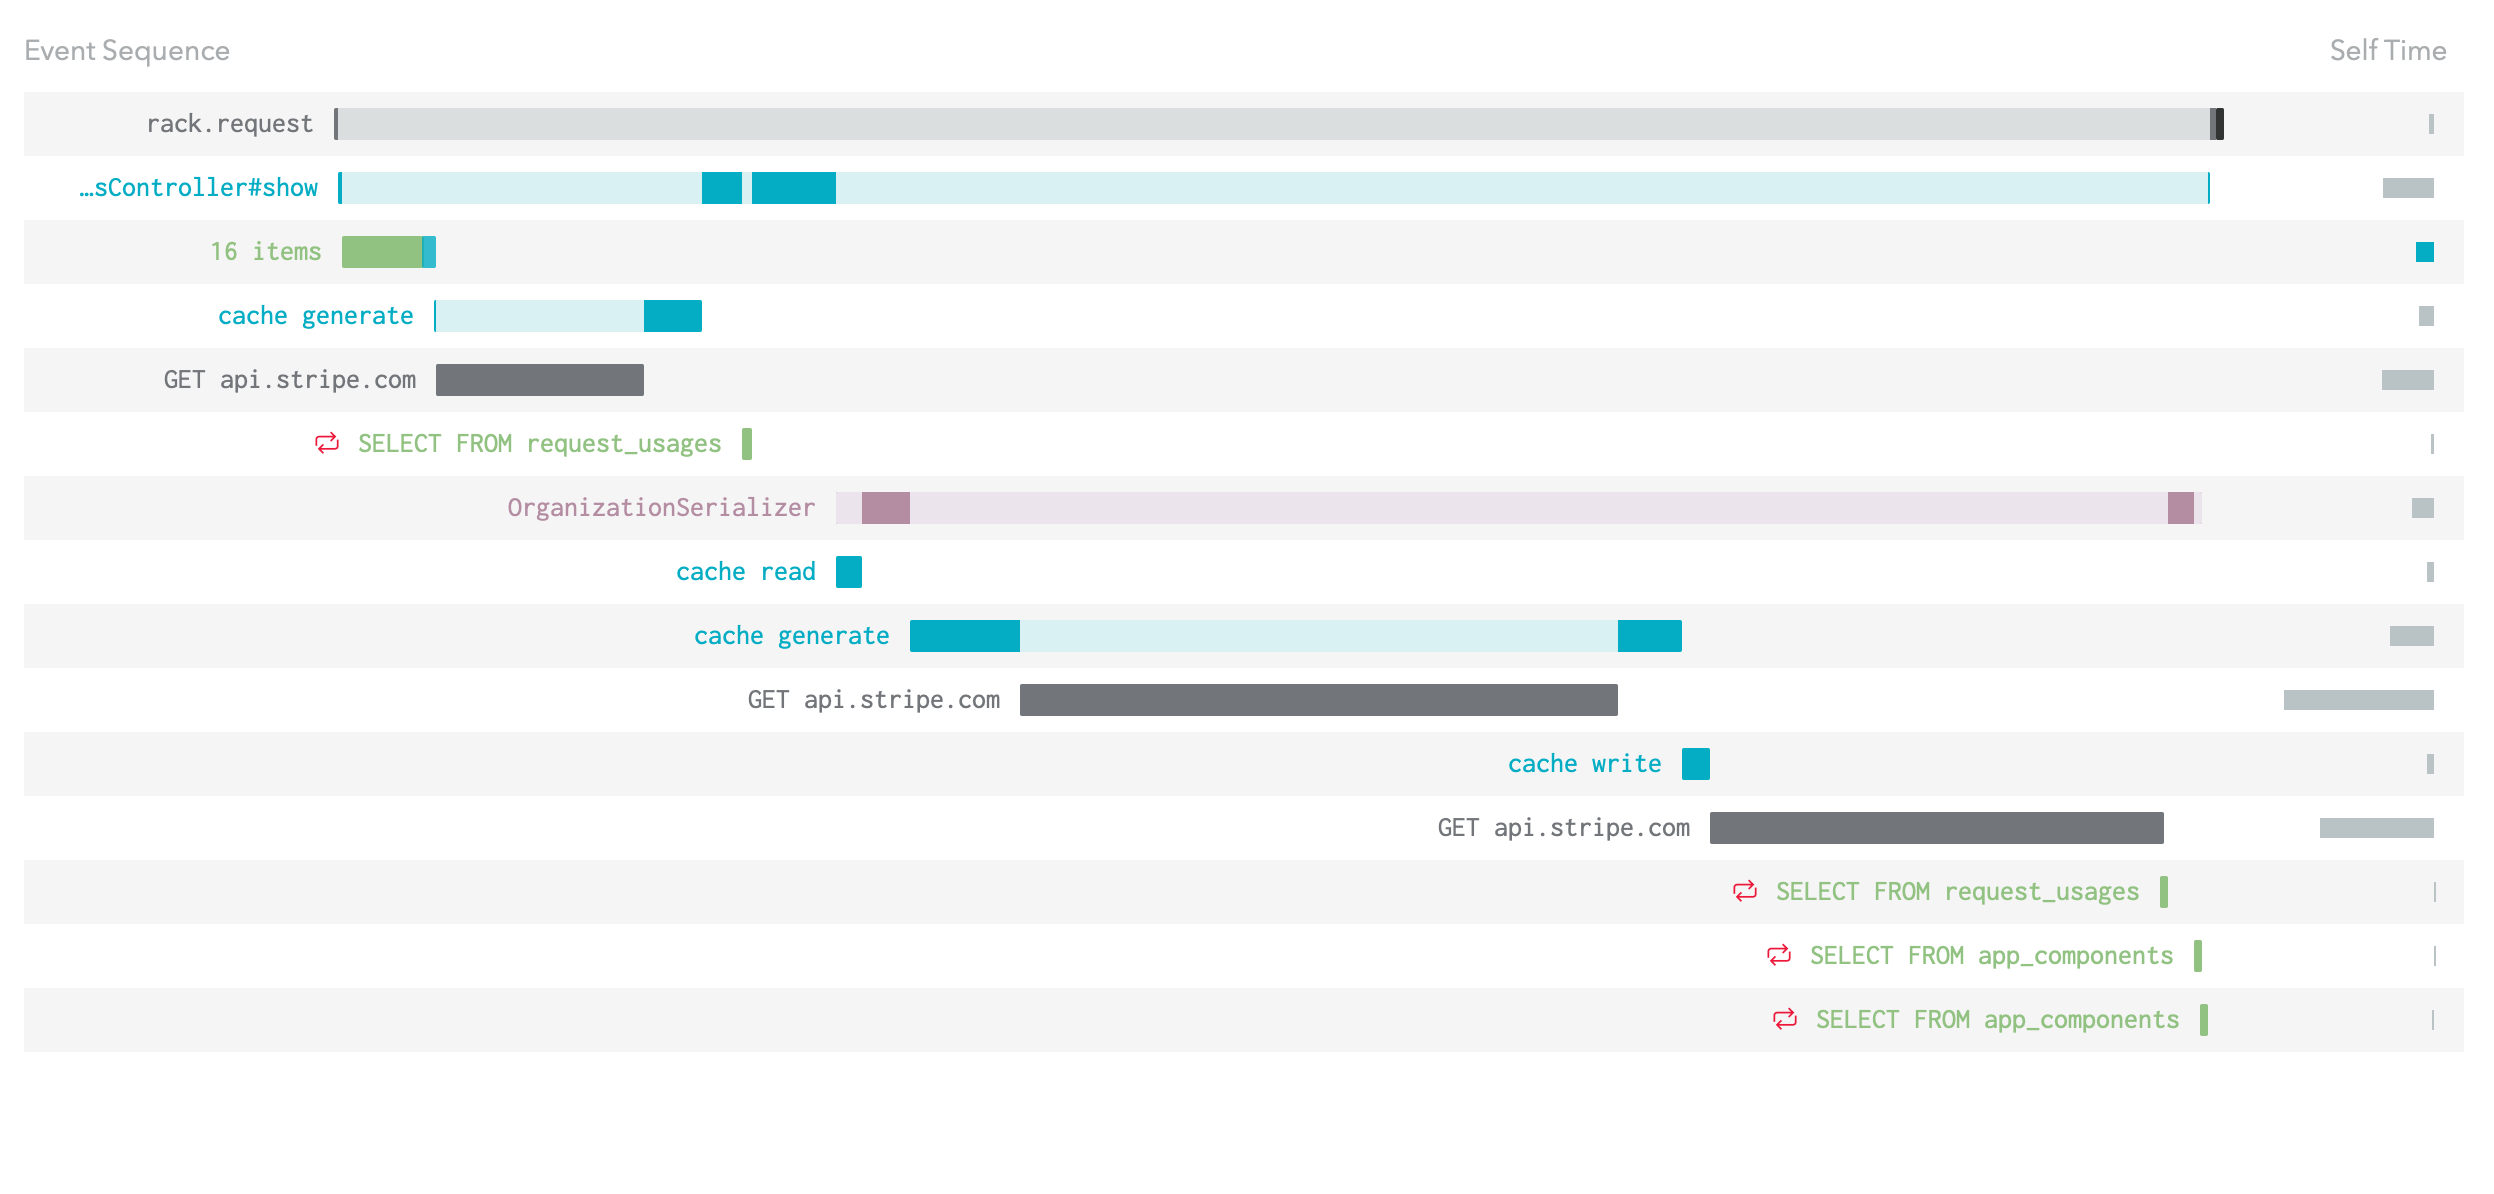 An event sequence with some cache hits, but also a number of different slow calls to api.stripe.com